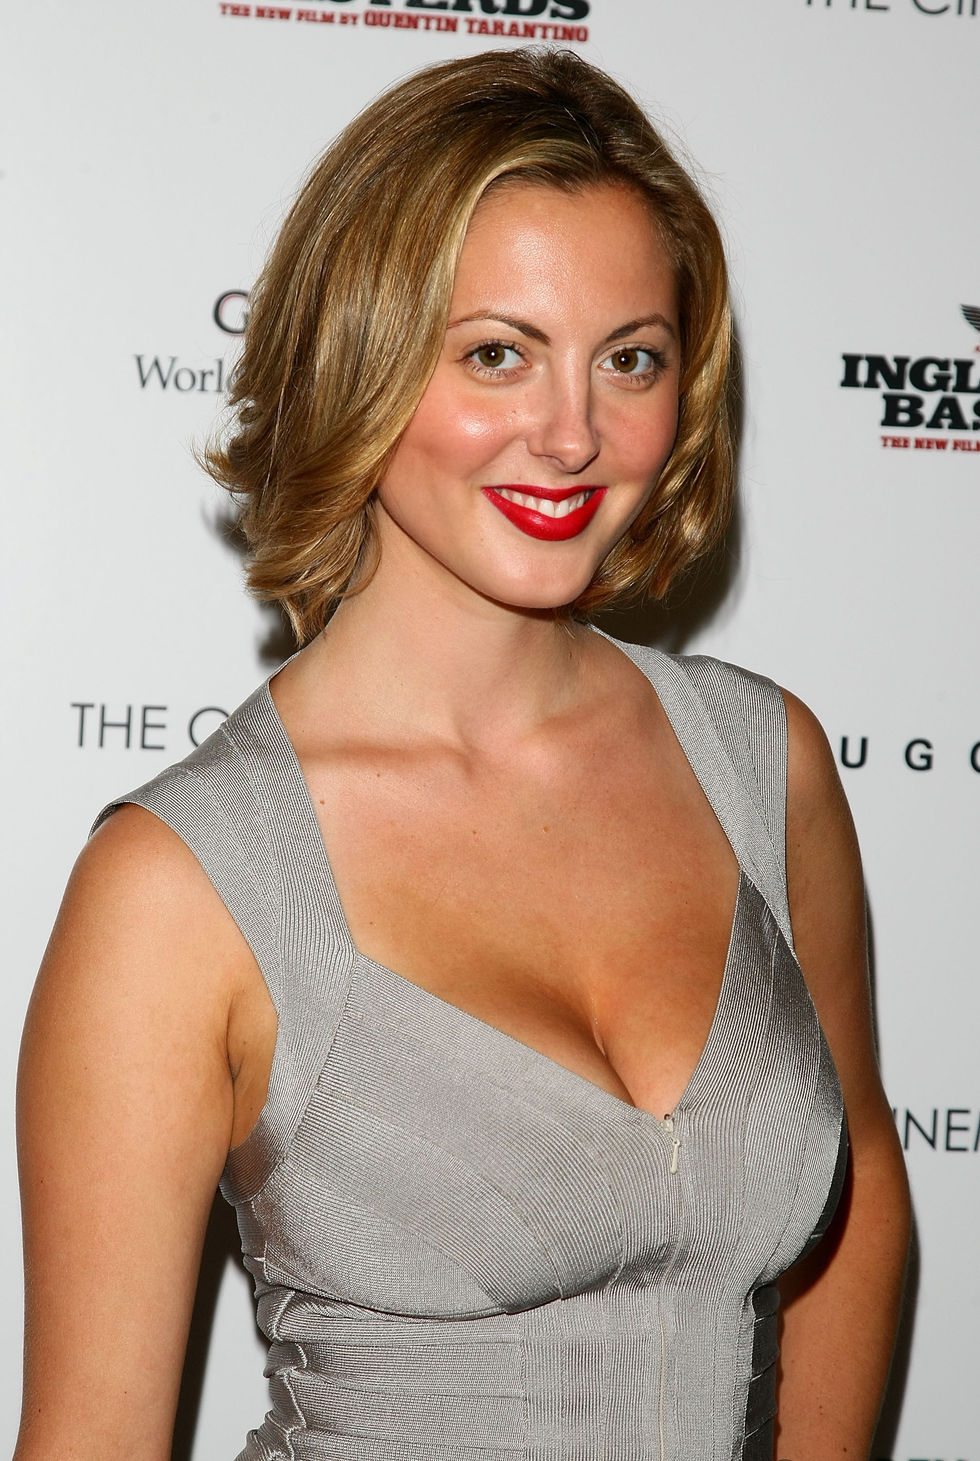 eva-amurri-inglourious-basterds-screening-in-new-york-10